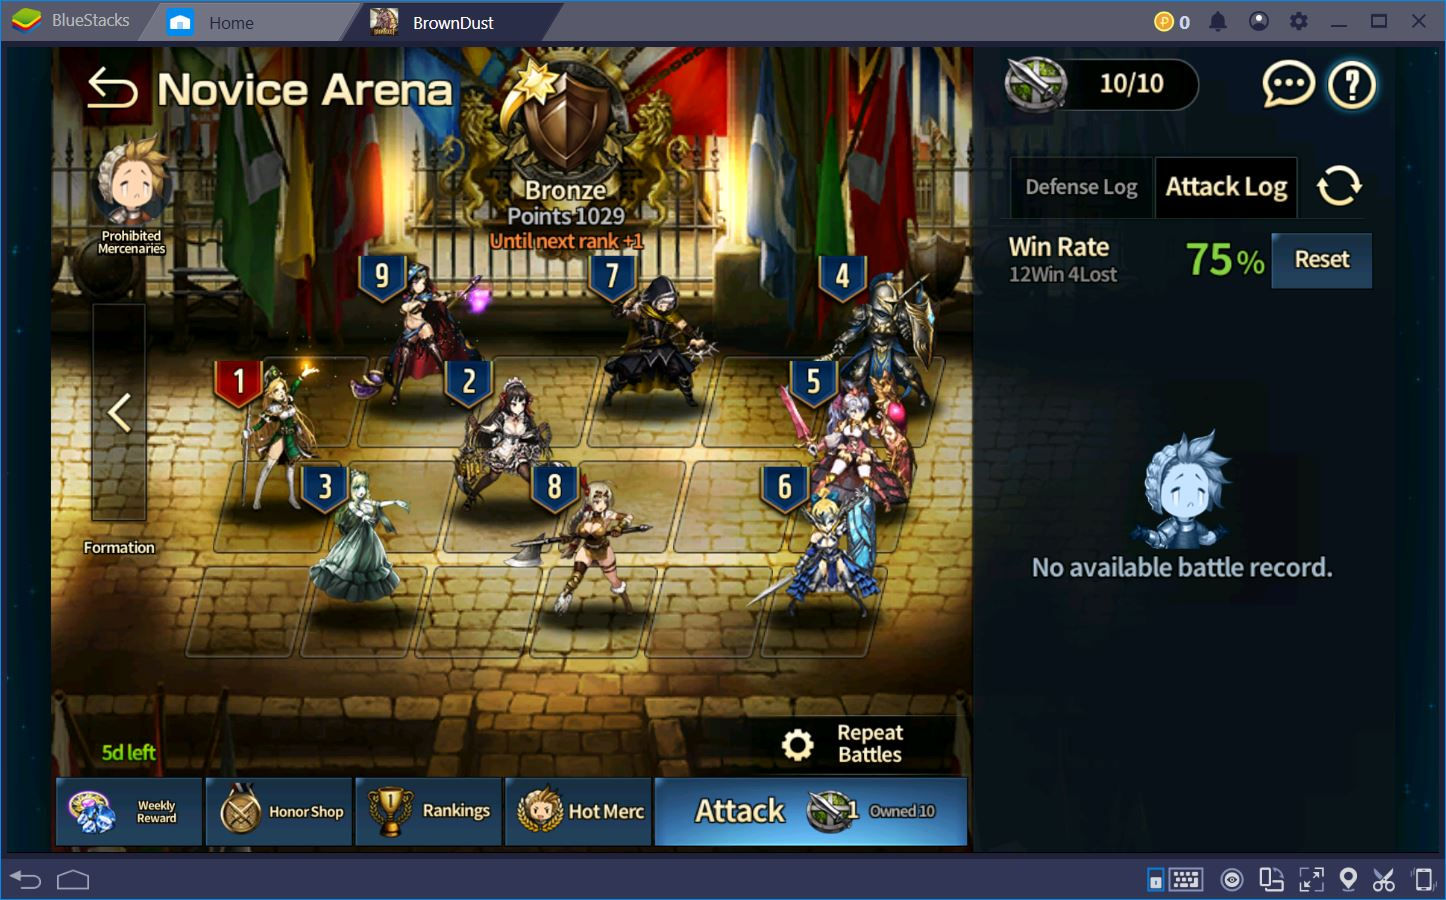 Brown Dust: Advanced Tips and Tricks for Arena Battles